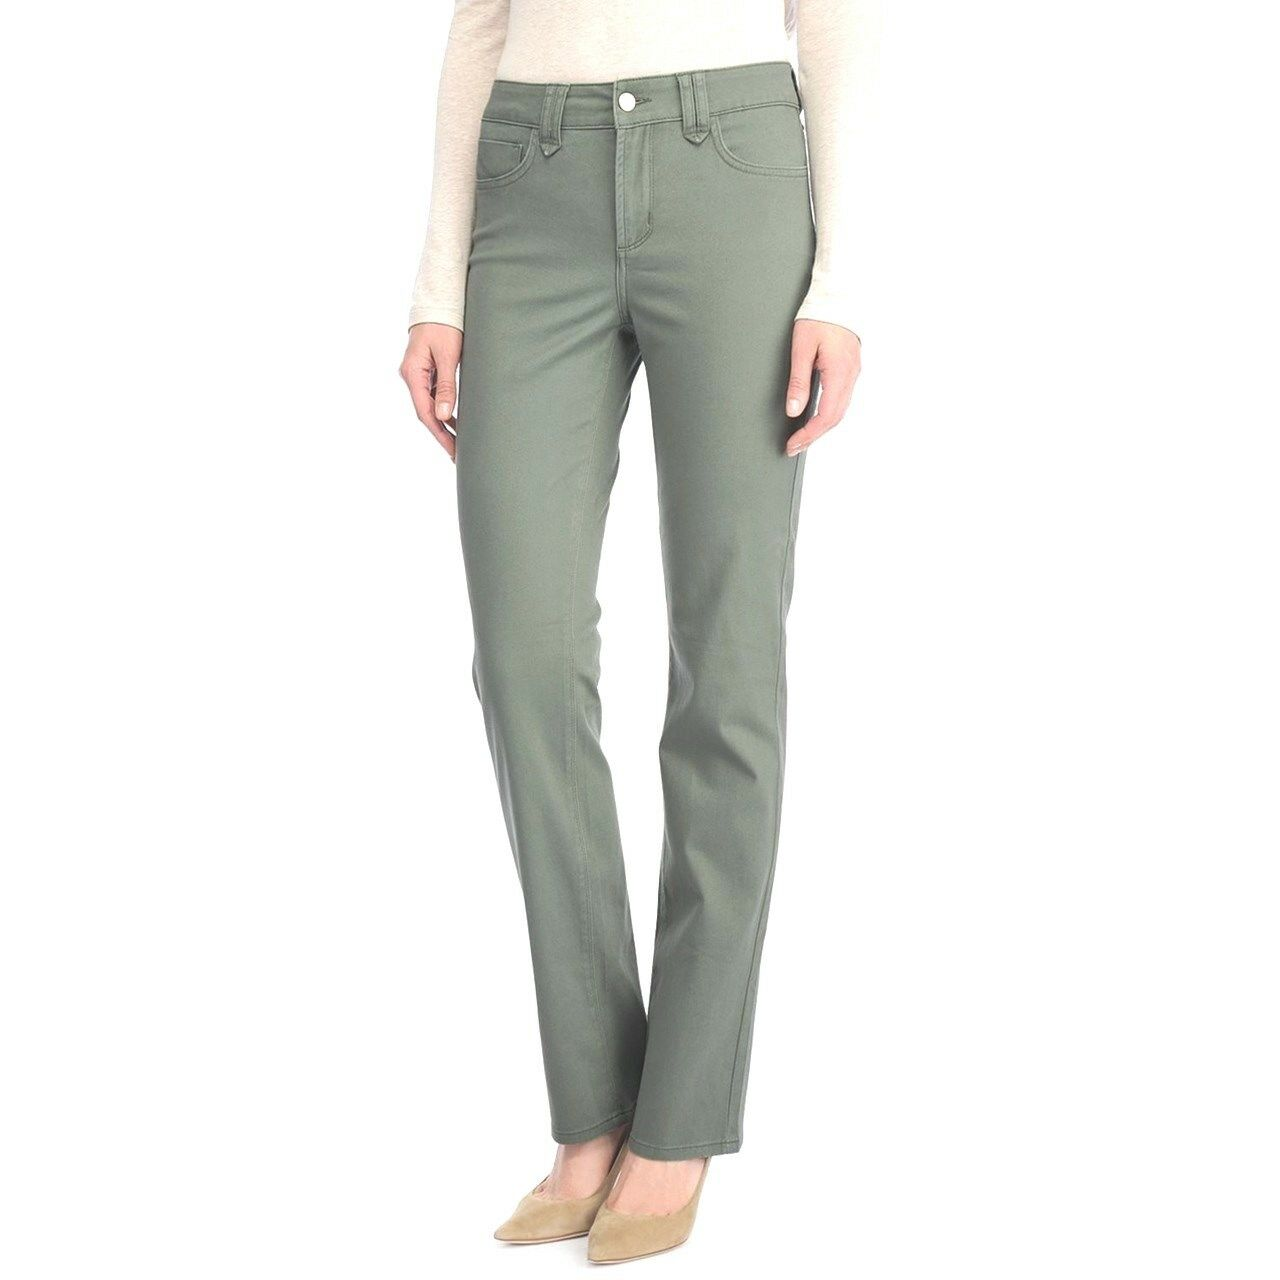 NEW NYDJ Not Your Daughters Jeans pant HAYDEN Straight pinkmary green 6P stretch